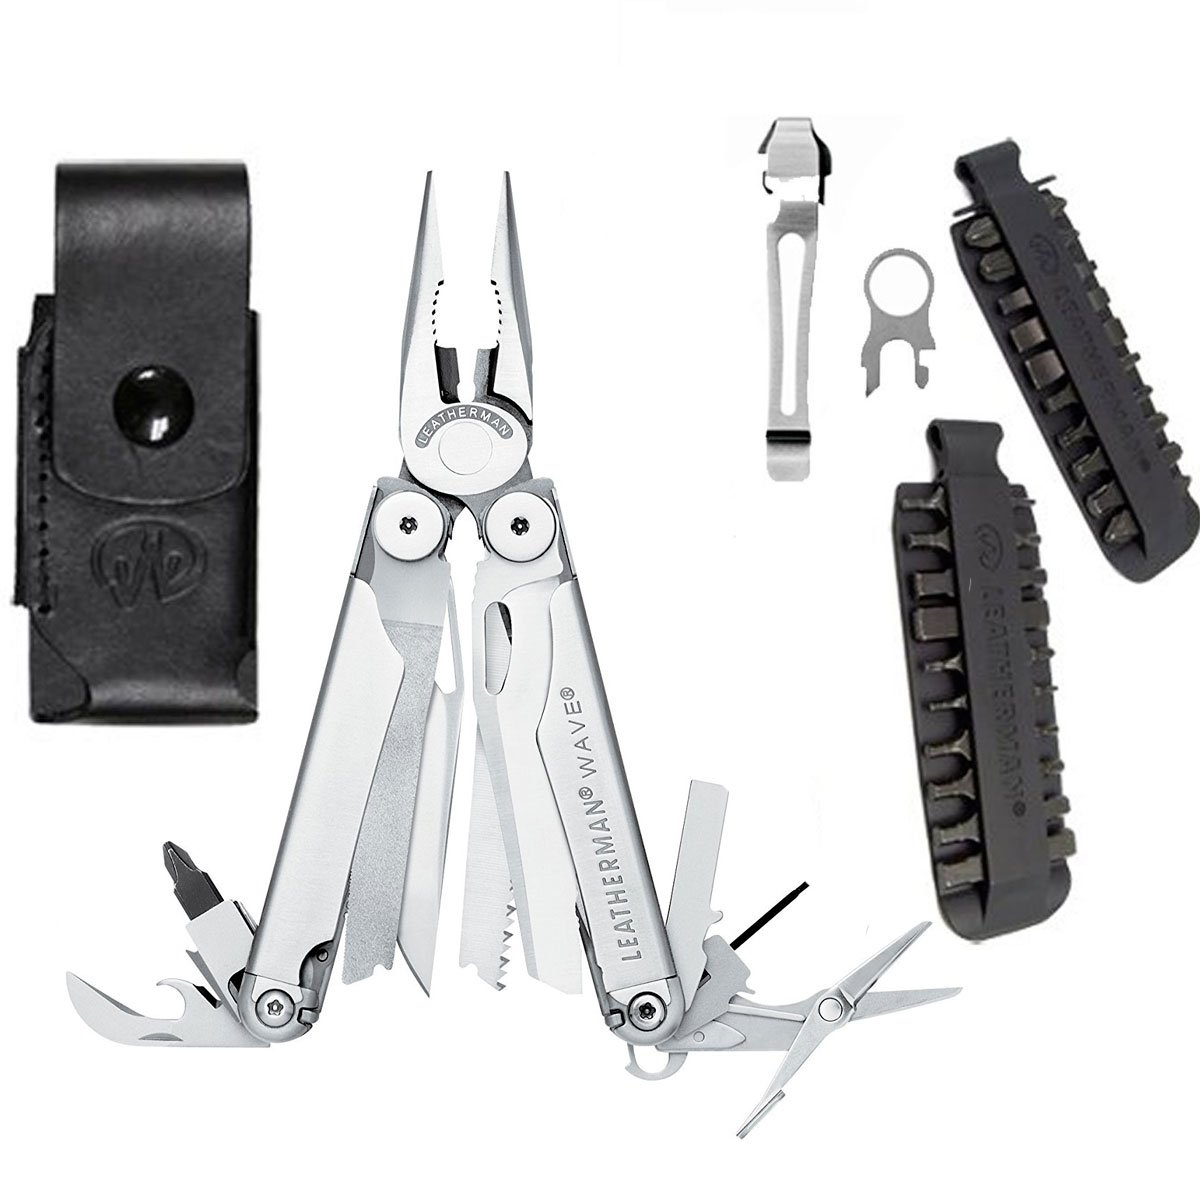 Leatherman New Wave Multitool with Leather/Nylon Combination Sheath + Leatherman 42 Piece Tool Steel Bit Kit + Removable Pocket Clip & Quick-Release Lanyard Ring